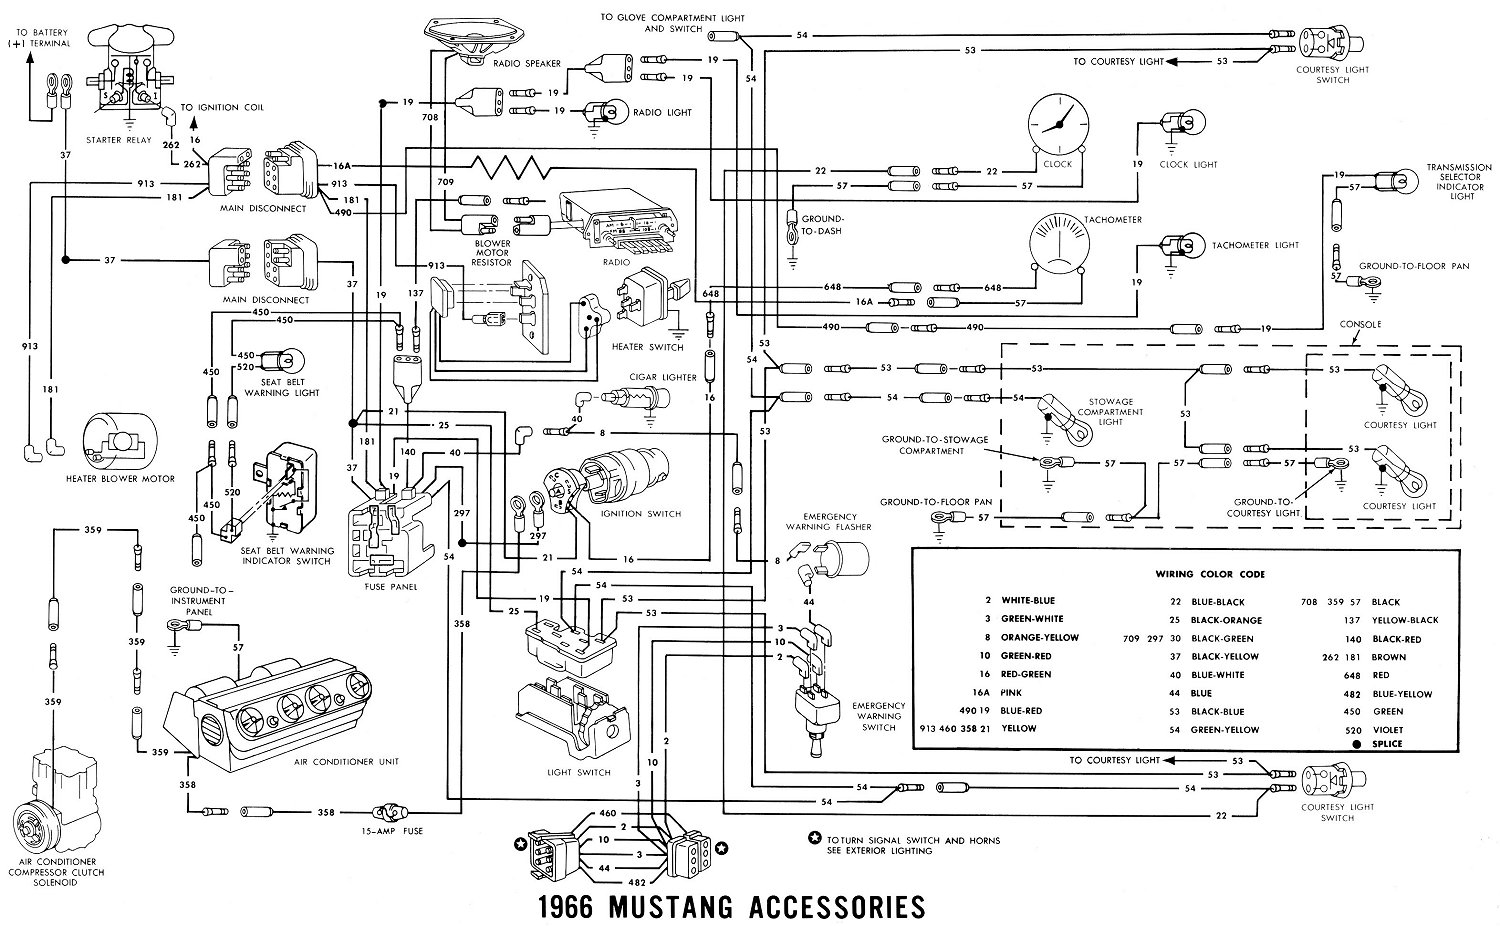 1968 Ford F100 Wiring Diagram Stereo 66 Mustang Schematic Opinions About Lelu S April 2011 1966 68 Harness